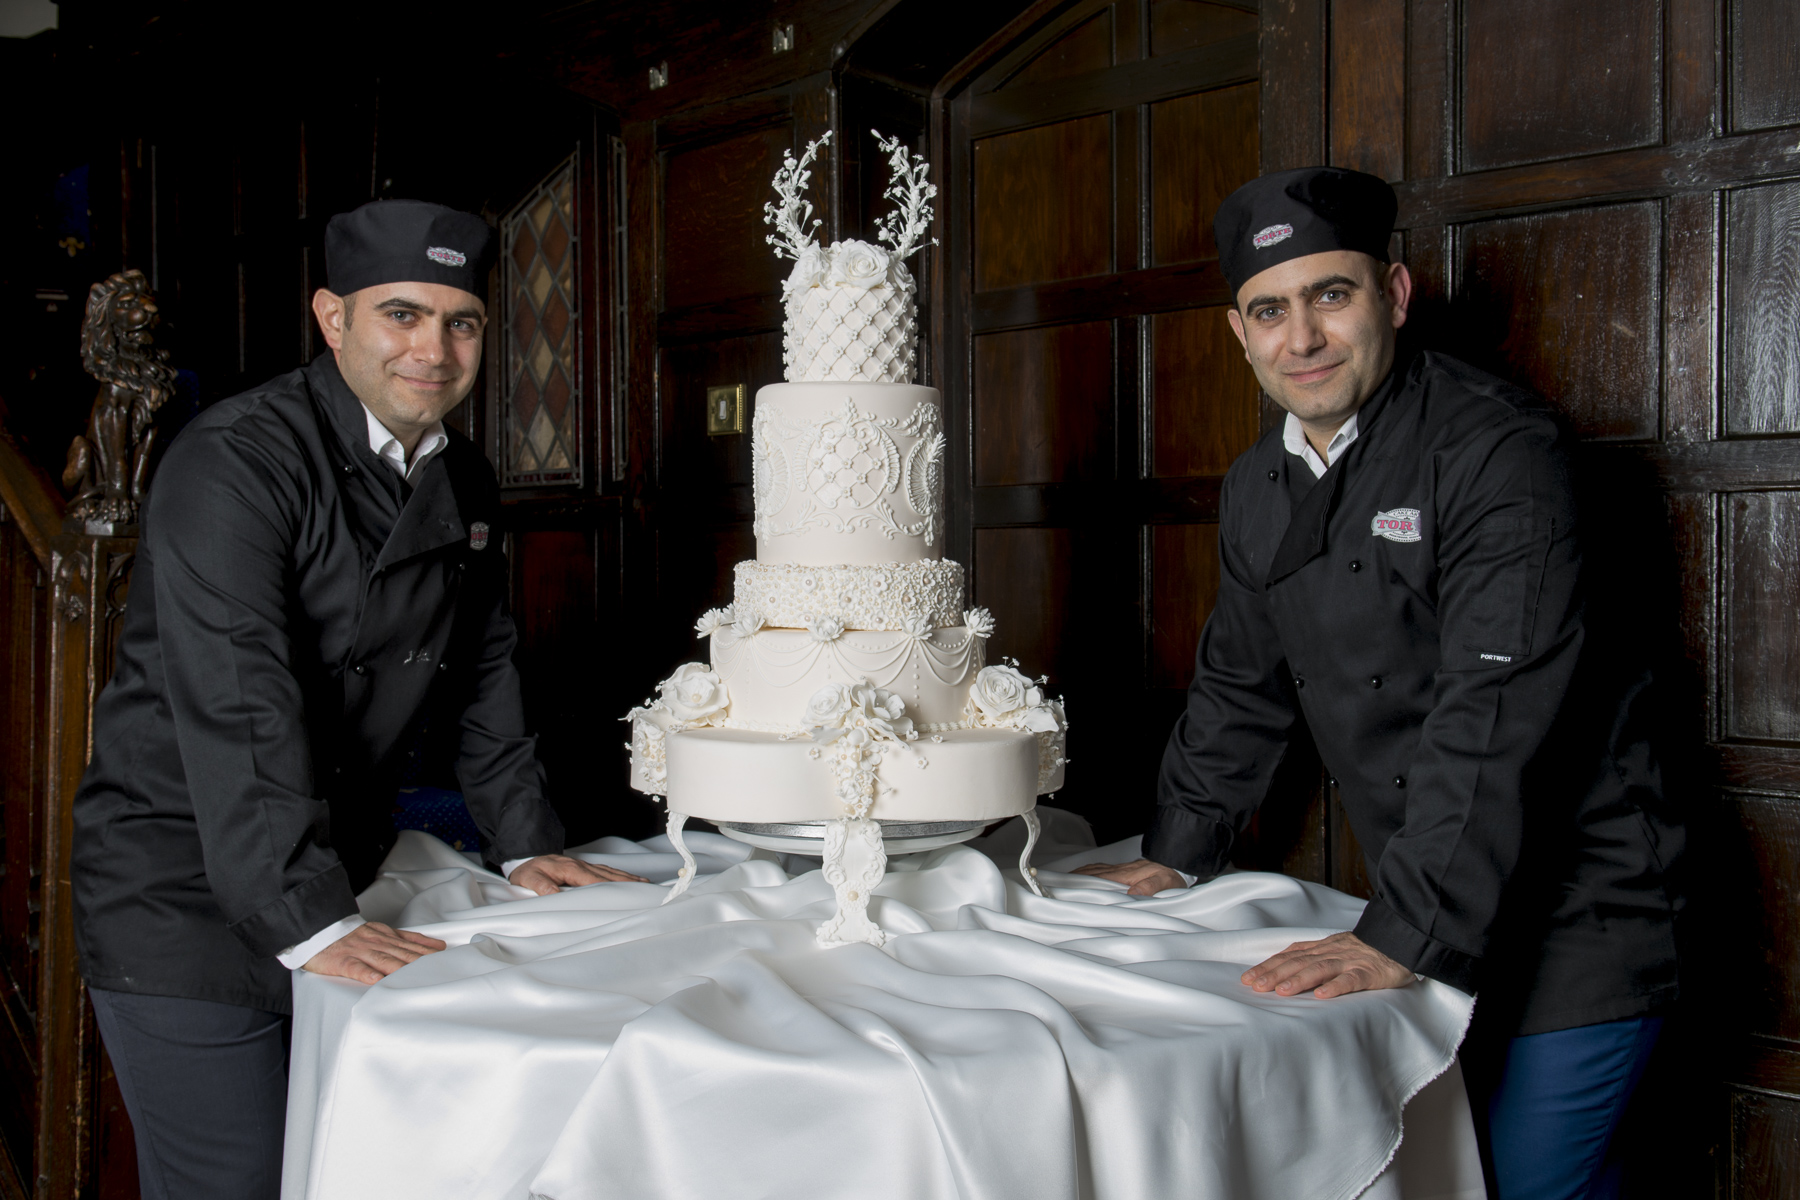 Arsen and Artak cake makers in Brentwood, Esssex